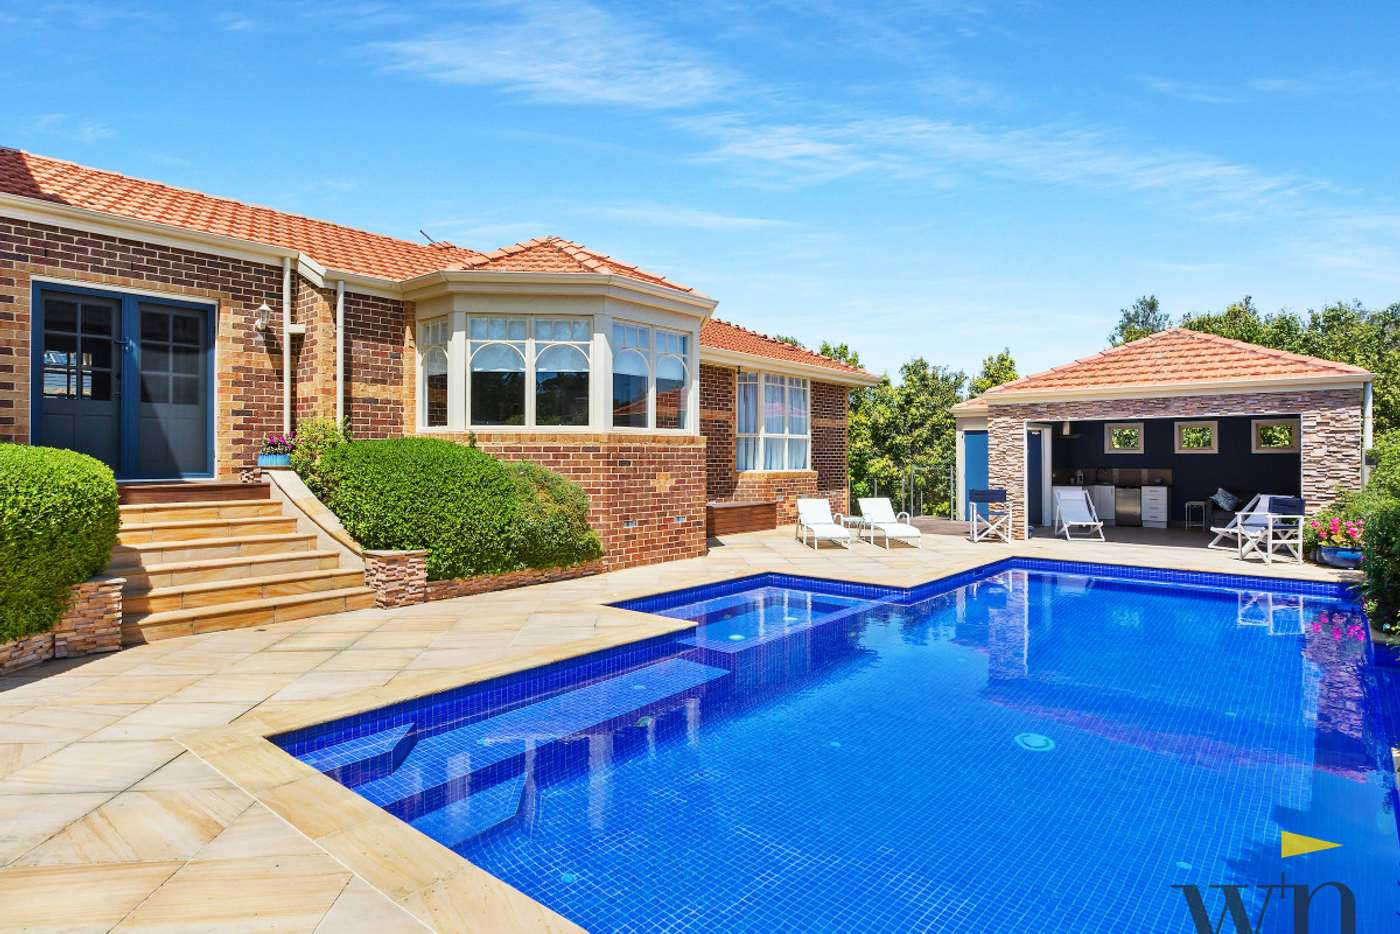 Main view of Homely house listing, 51 Legacy Drive, Mount Martha VIC 3934